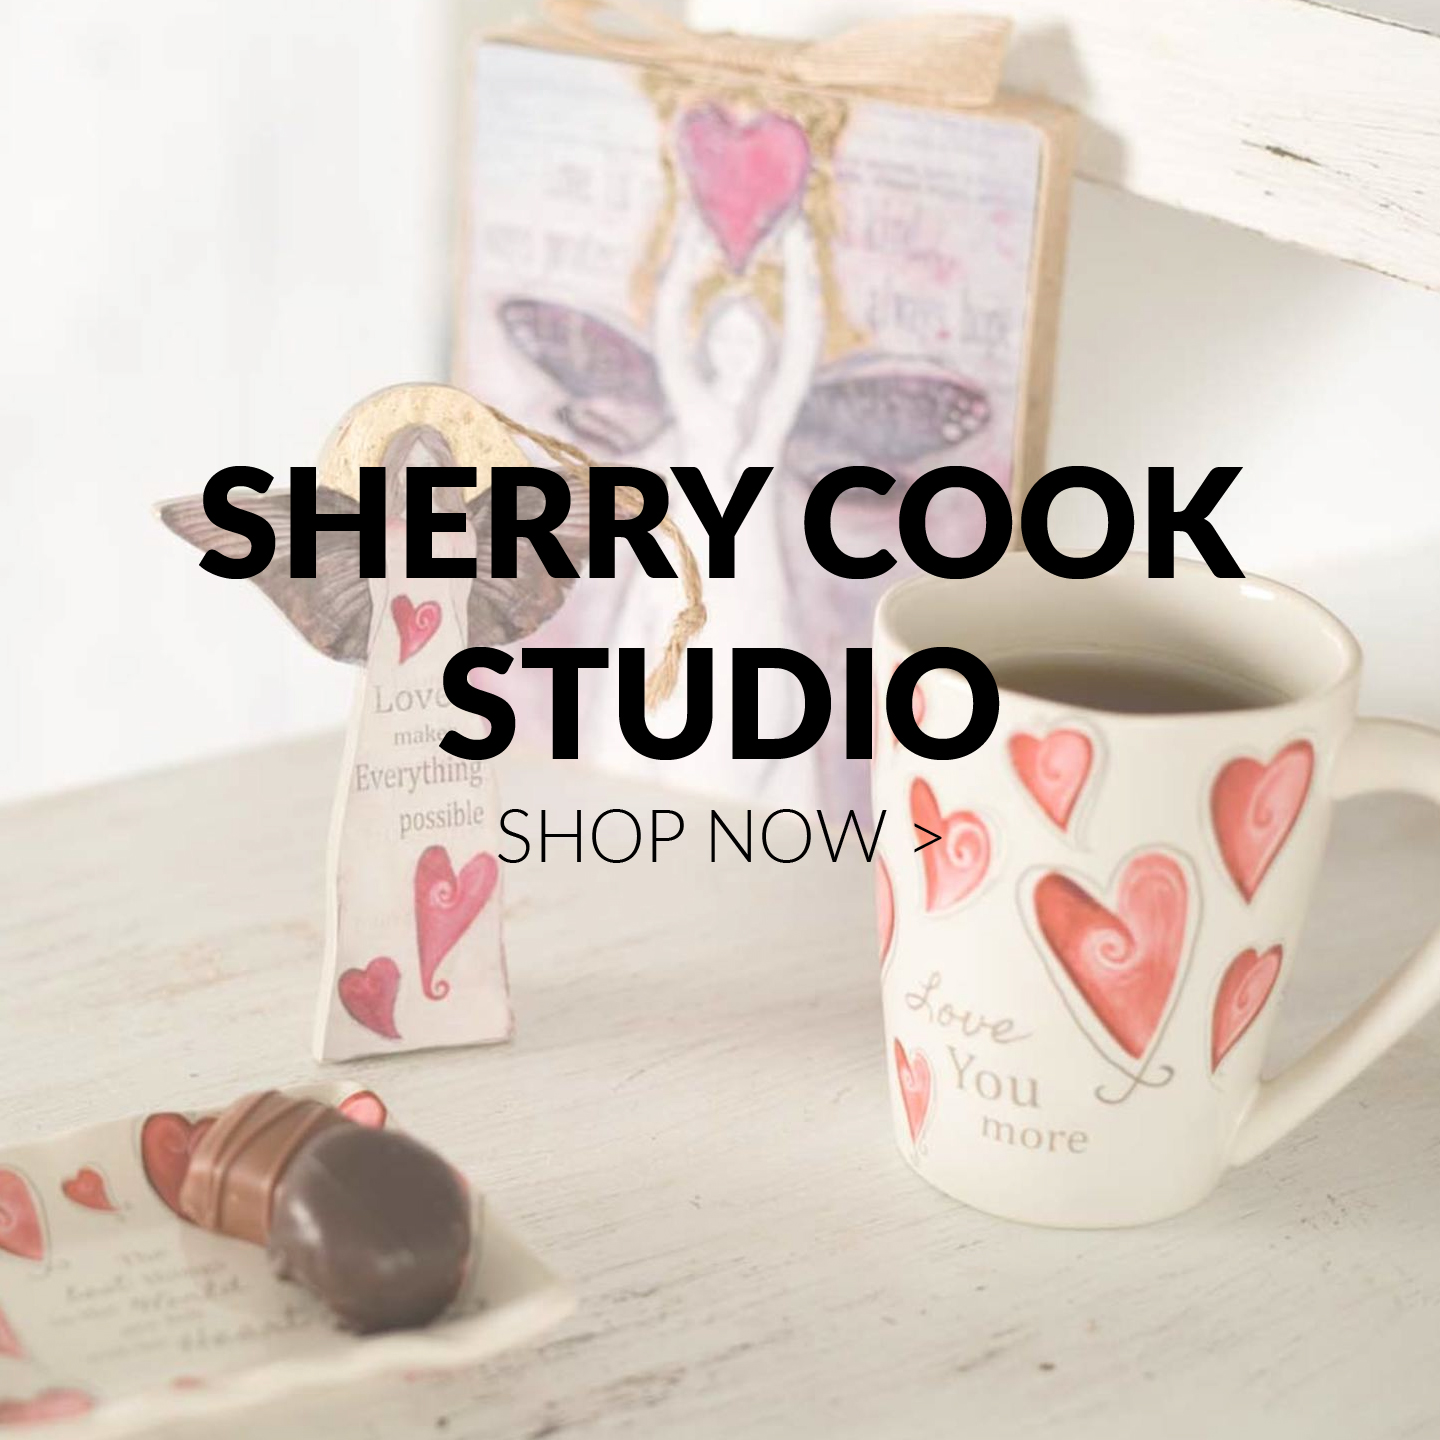 Sherry Cook Studio